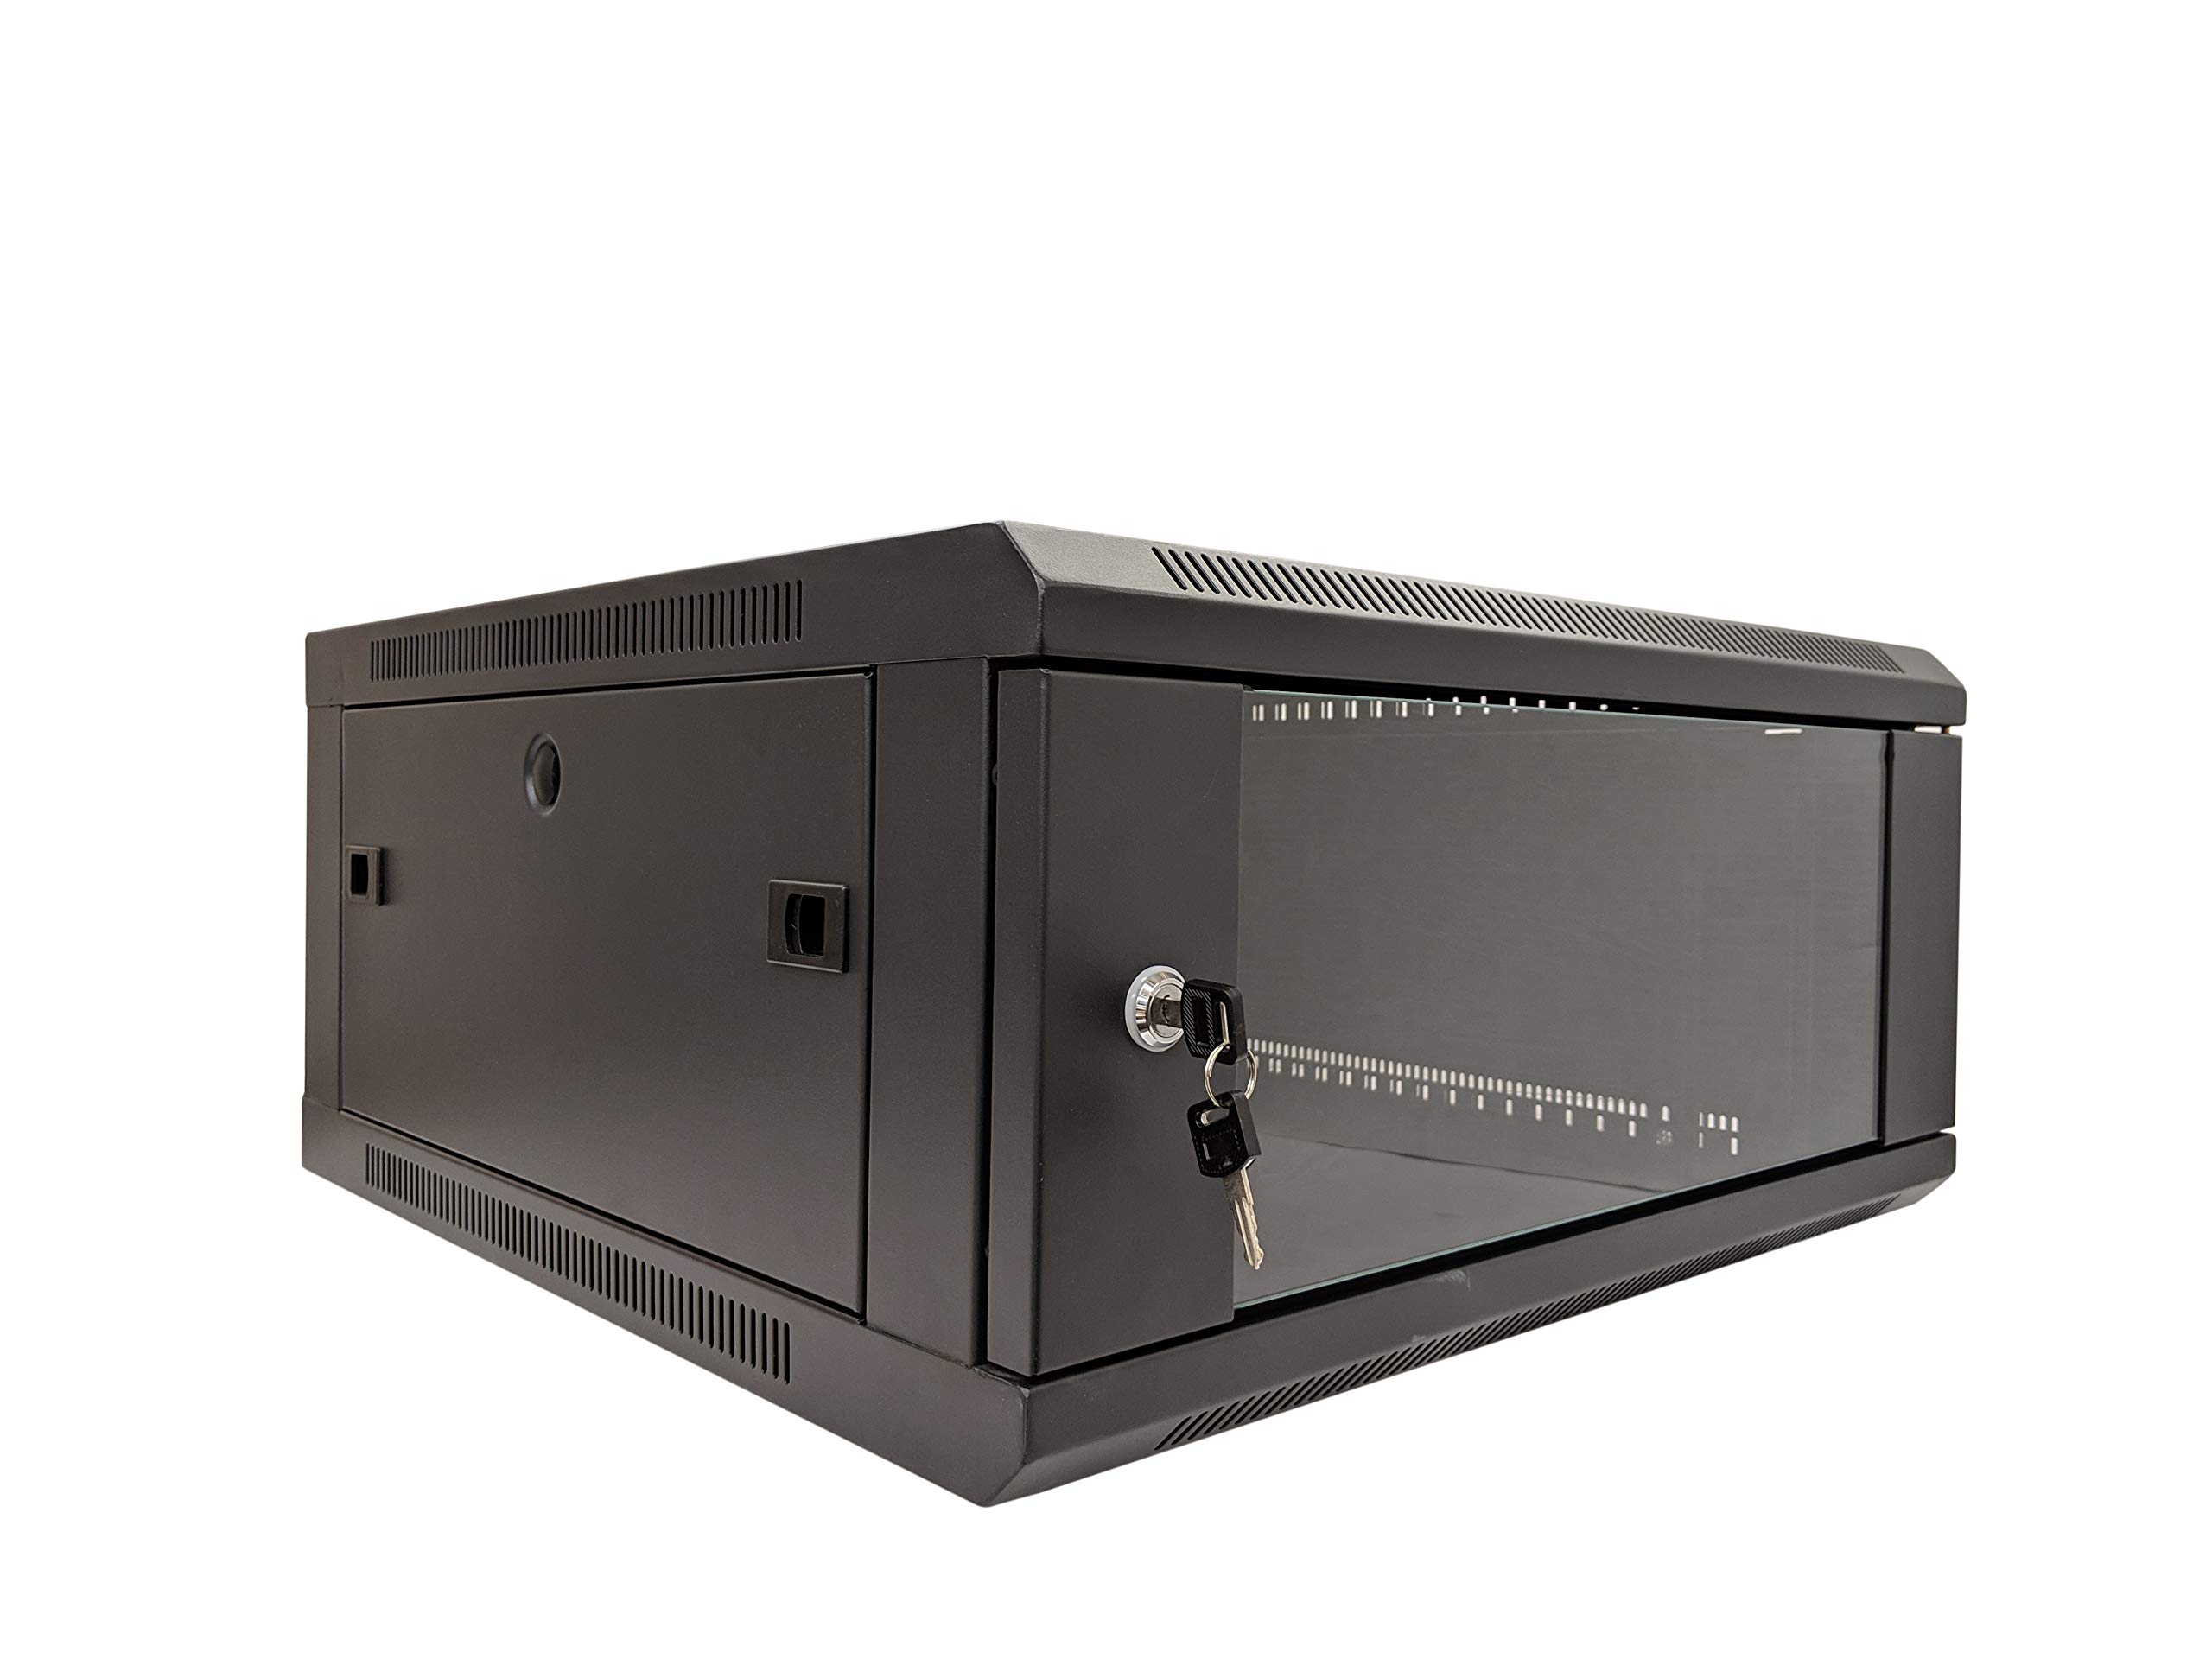 KENUCO [Fully Assembled] LNWW Deluxe IT Wall Mount Cabinet | Server Rack |  Data Network Enclosure 19-Inch Server Network Rack with Locking Tempered